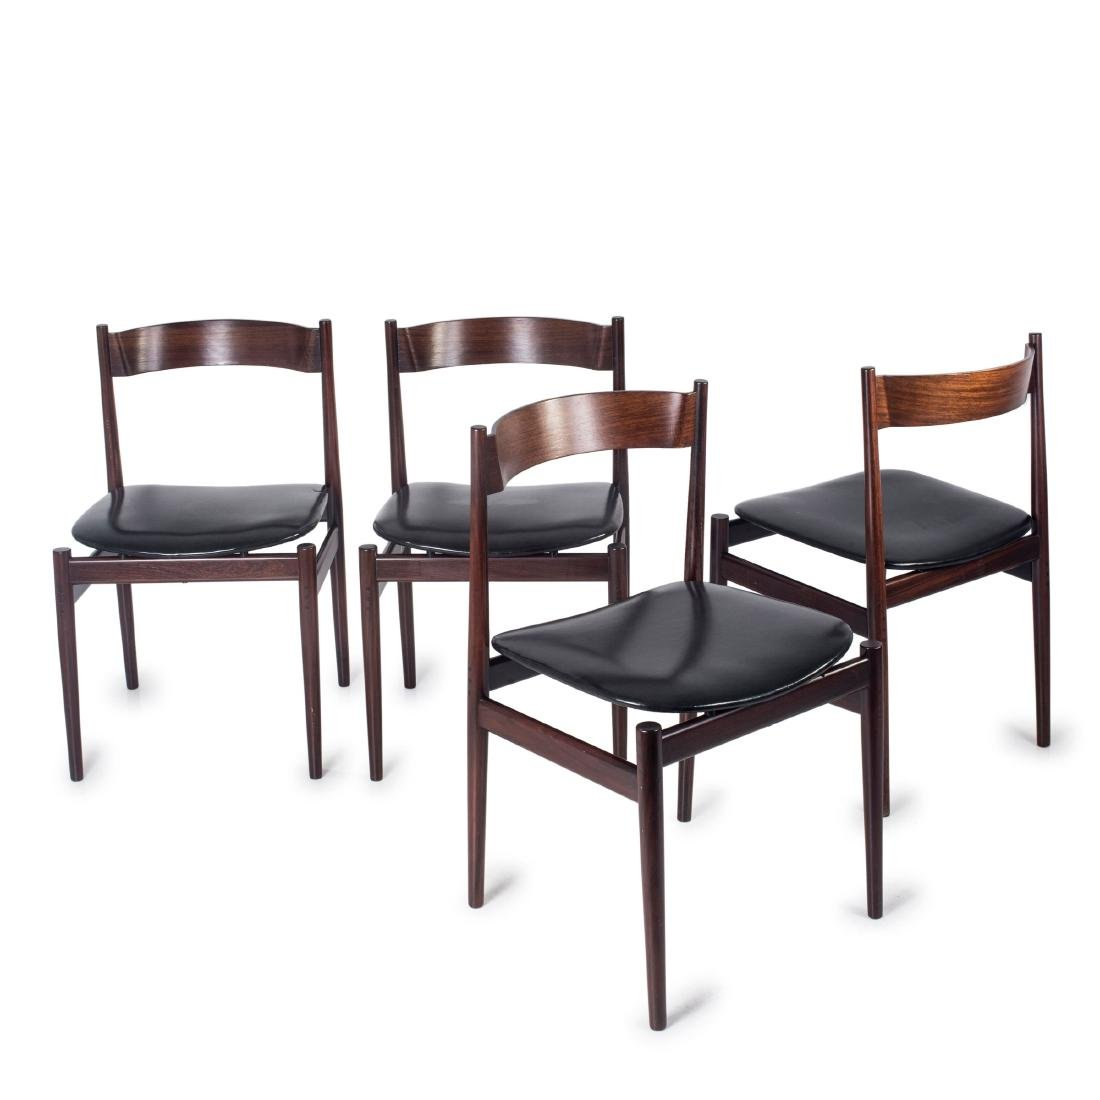 Four '107' chairs, 1960